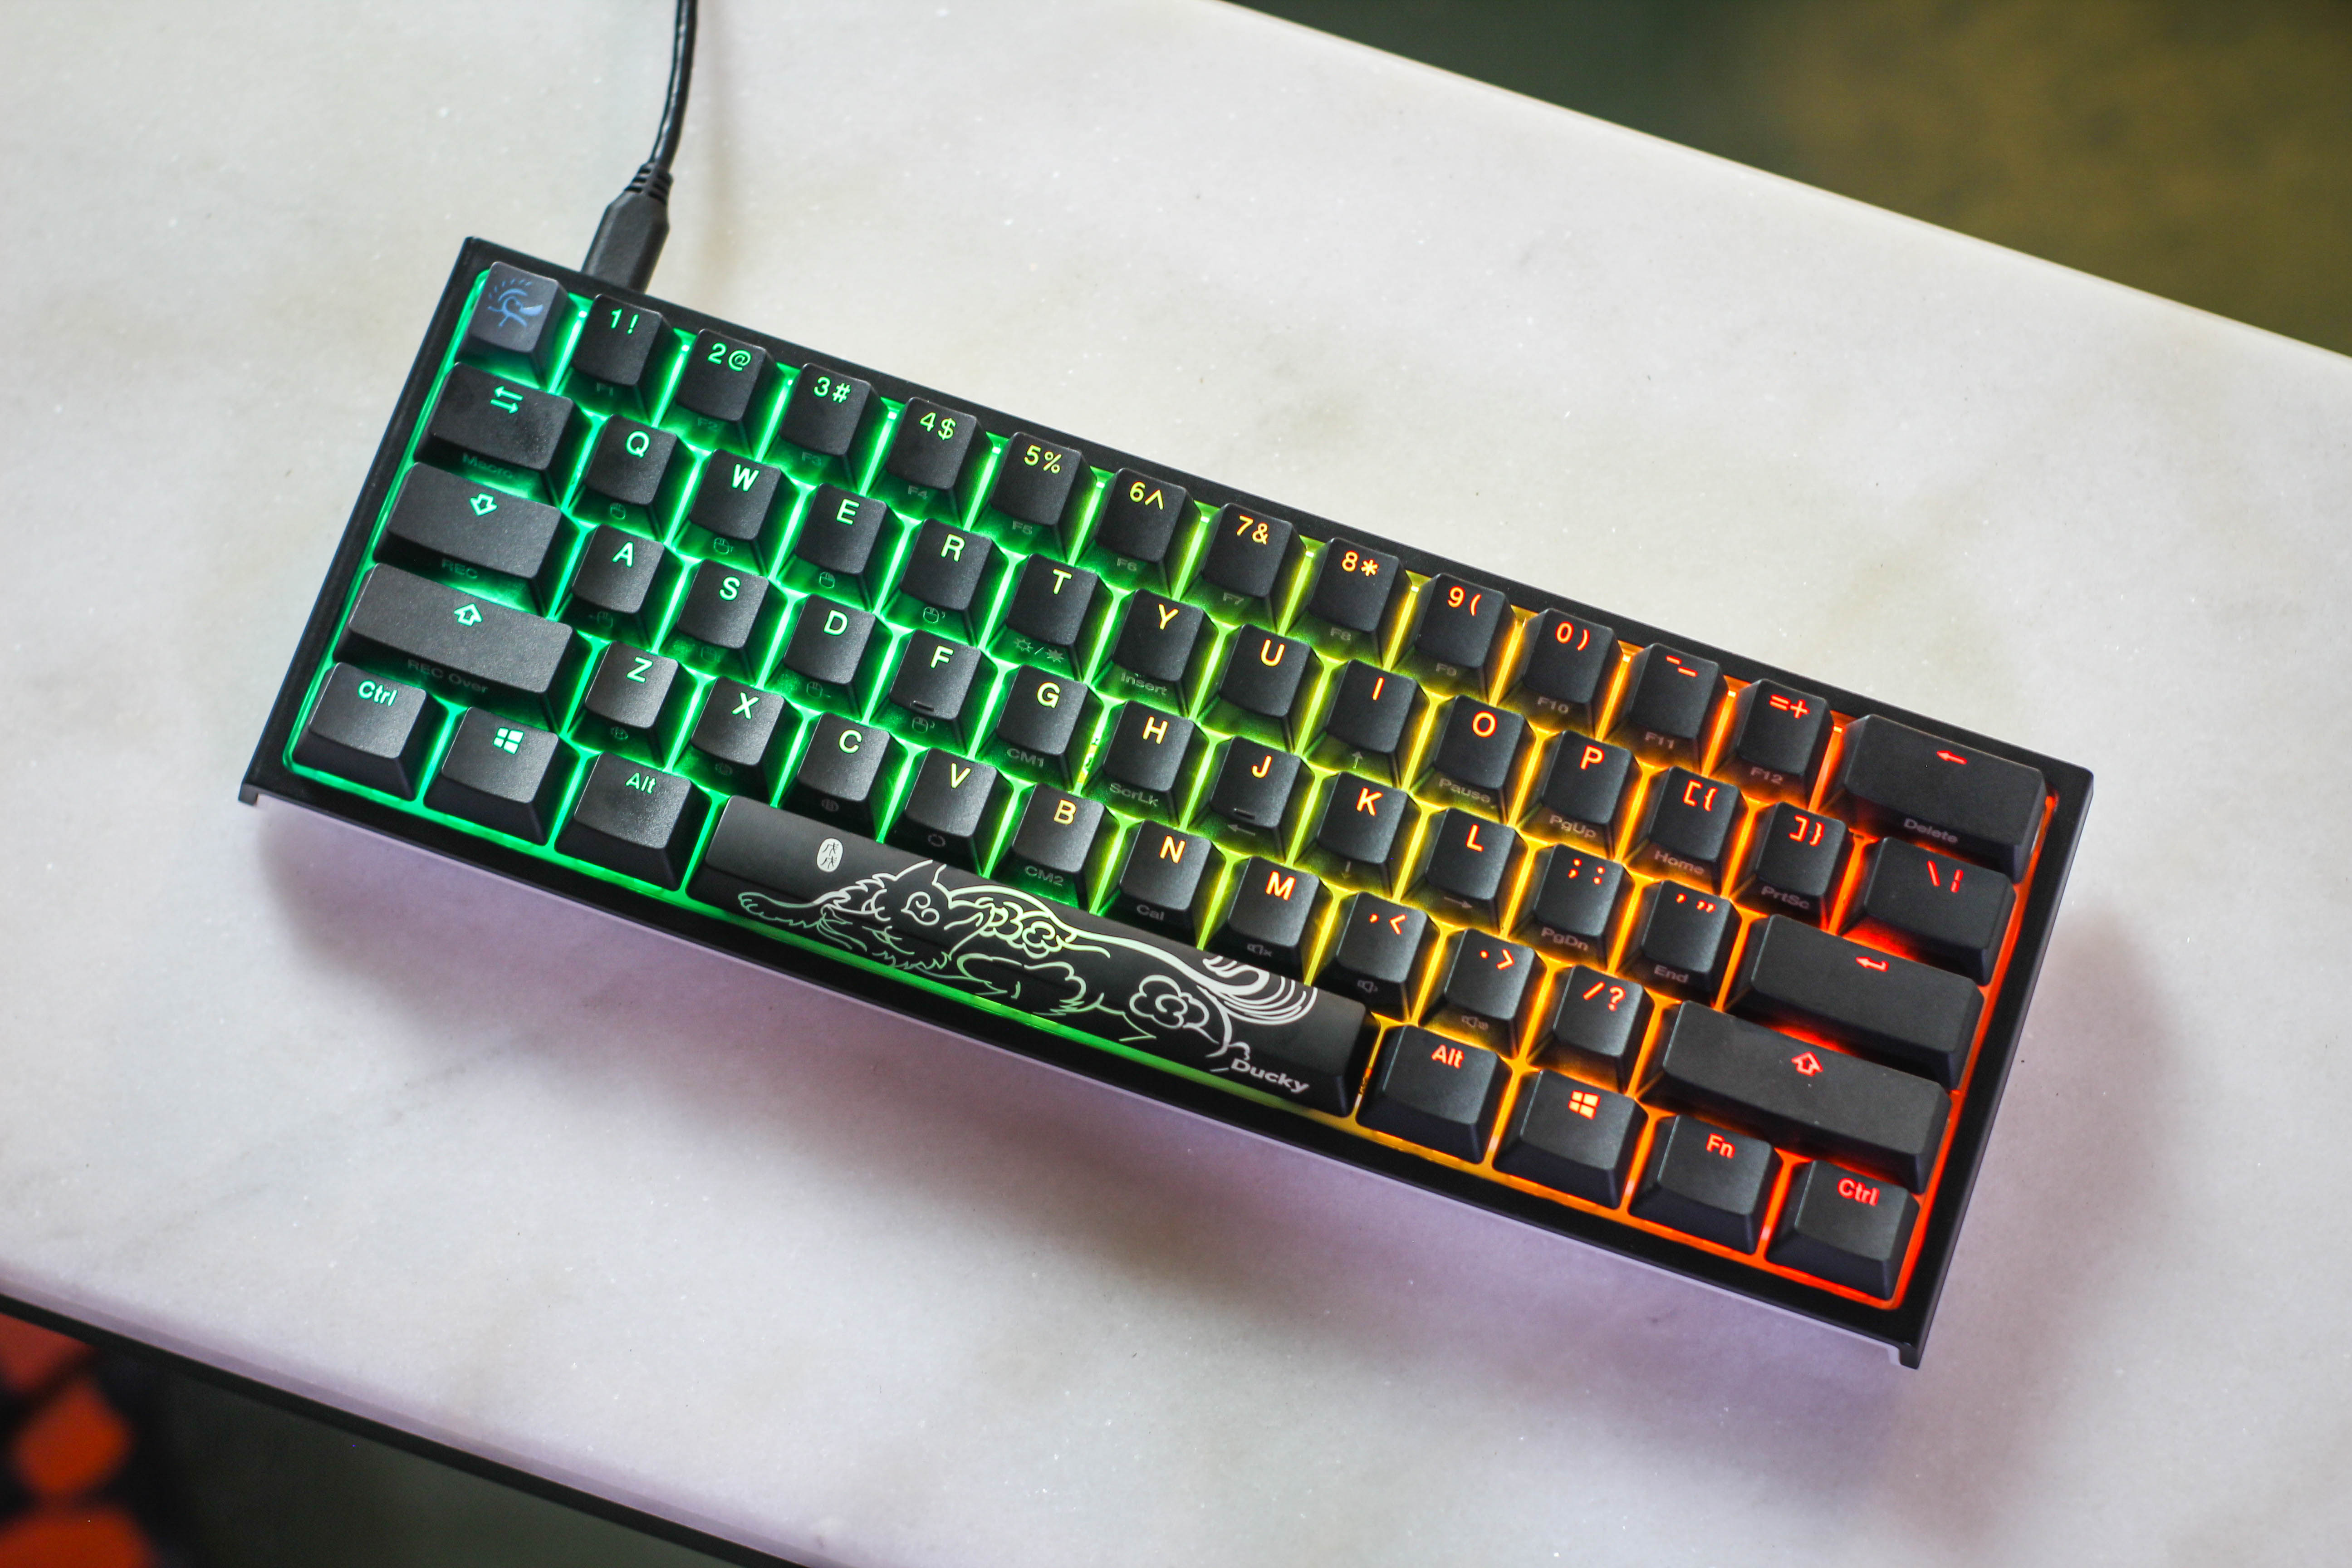 Ducky One 2 Mini Mechanical Keyboard : REVIEW